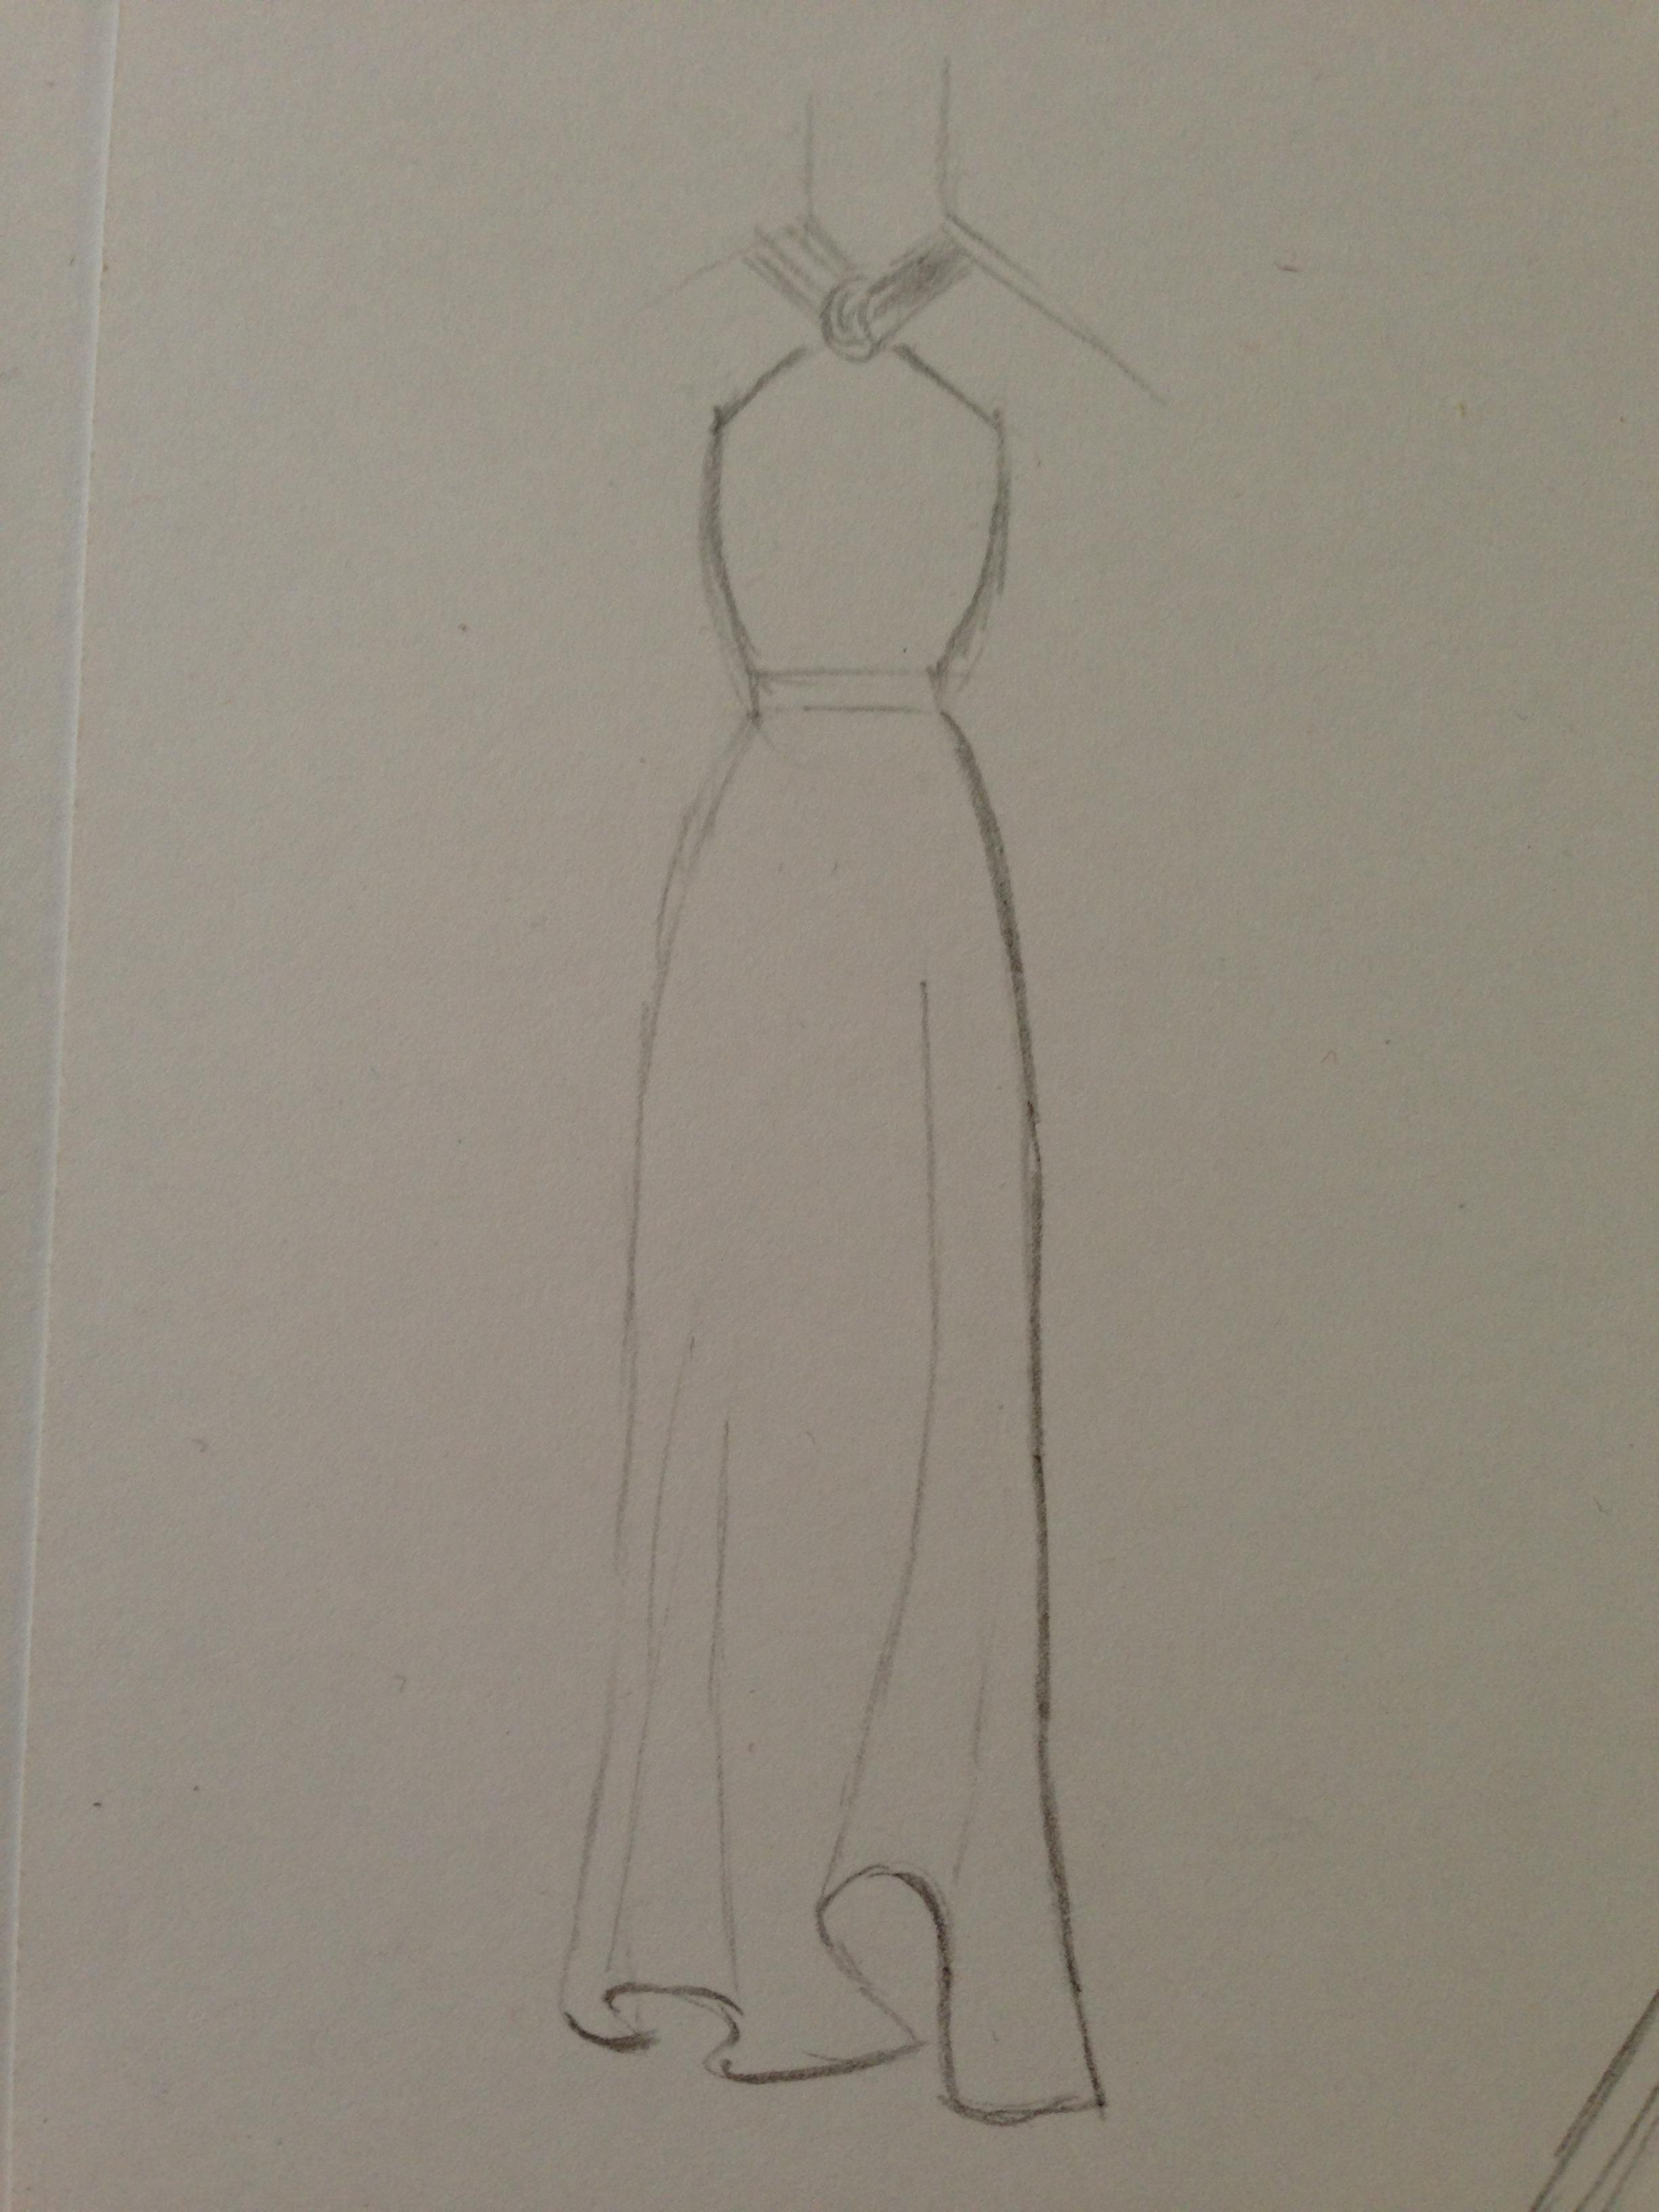 WATERCOLOR -- Dresses that Inspire - image 14 - student project